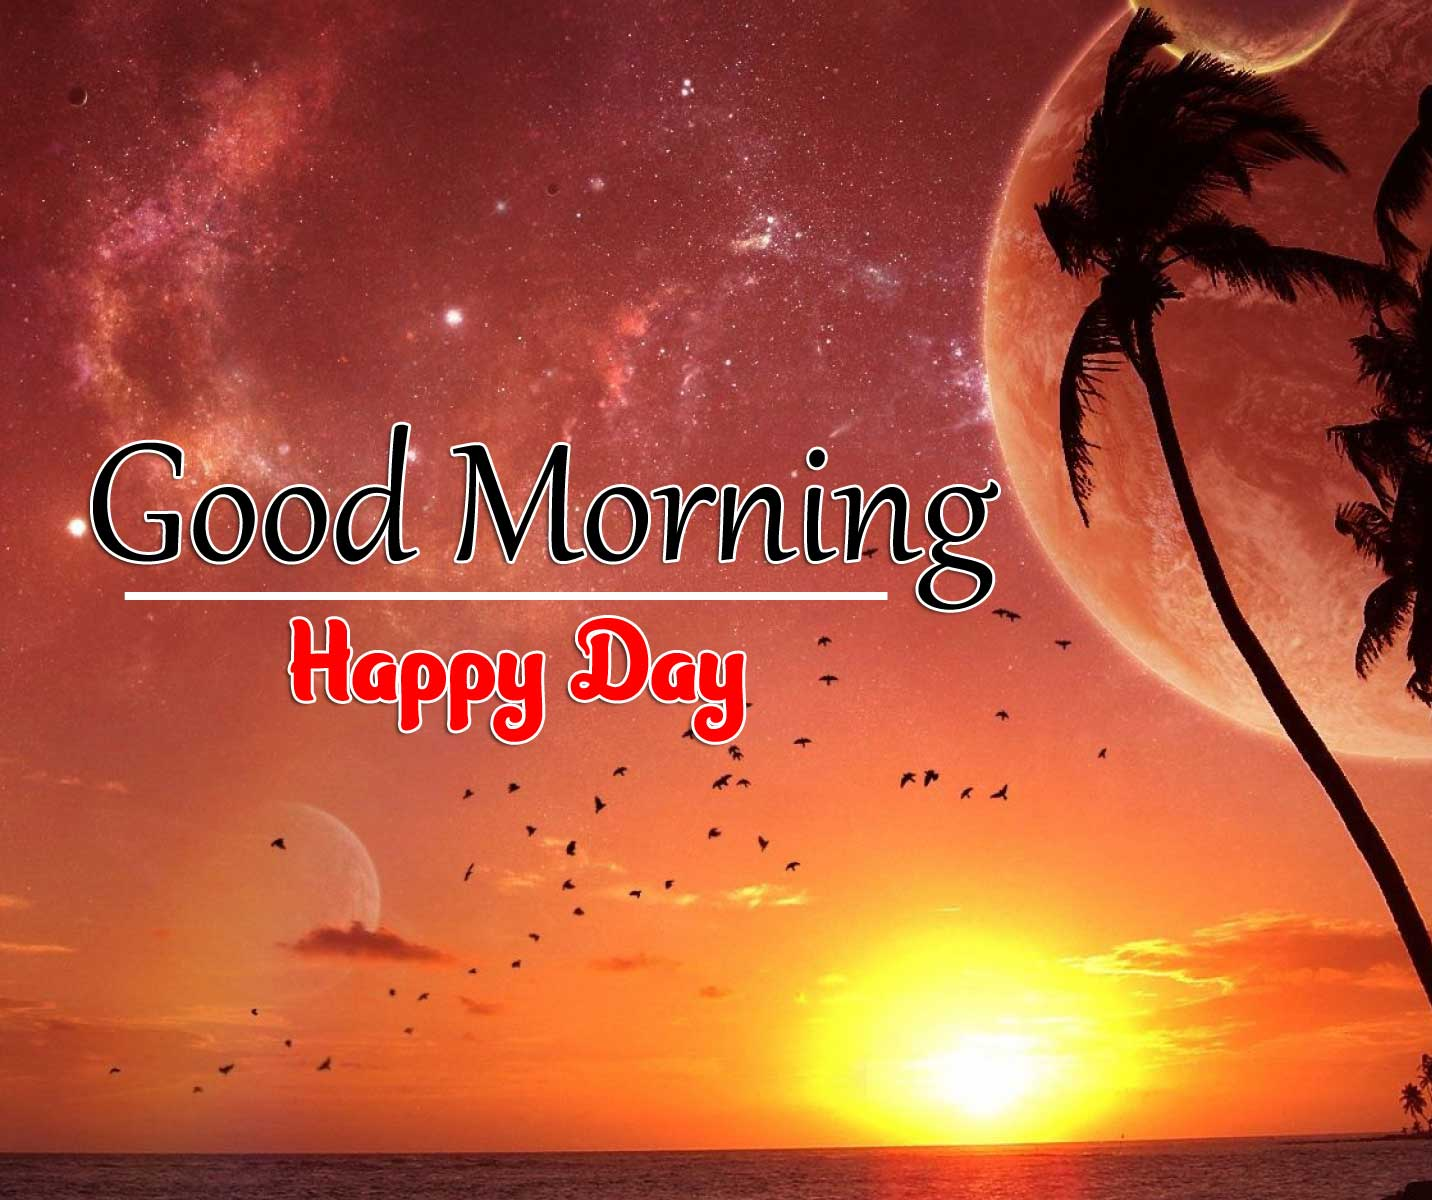 Latest Good Morning Images Wallpaper 8